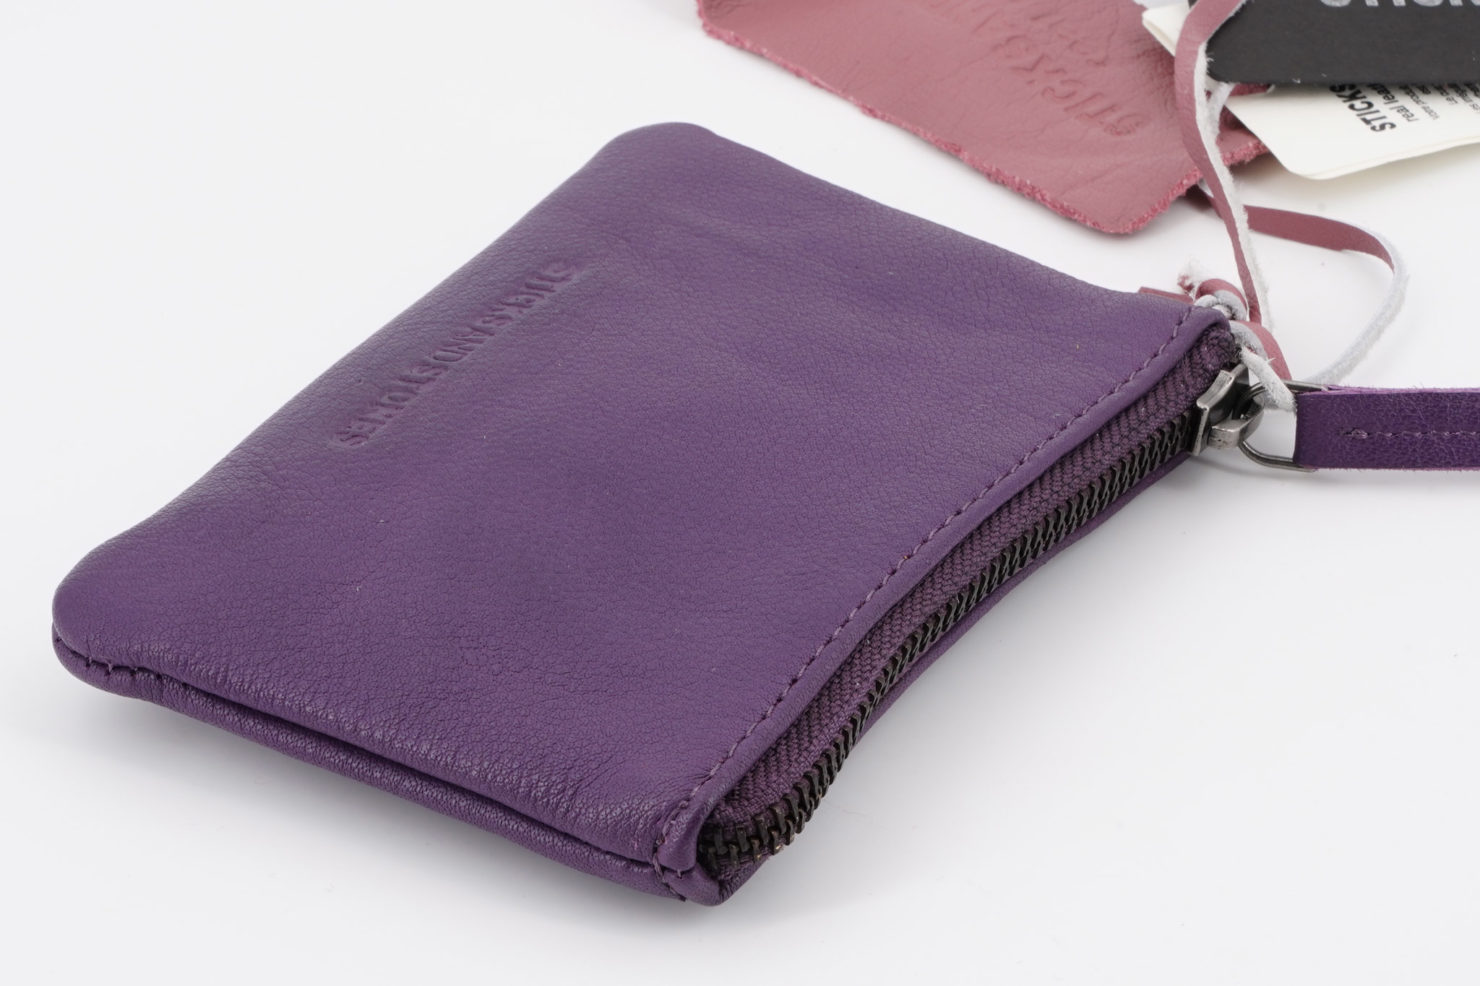 NICE WALLET- BUFF WASHED SHADOW PURPLE- STICKSANDSTONES